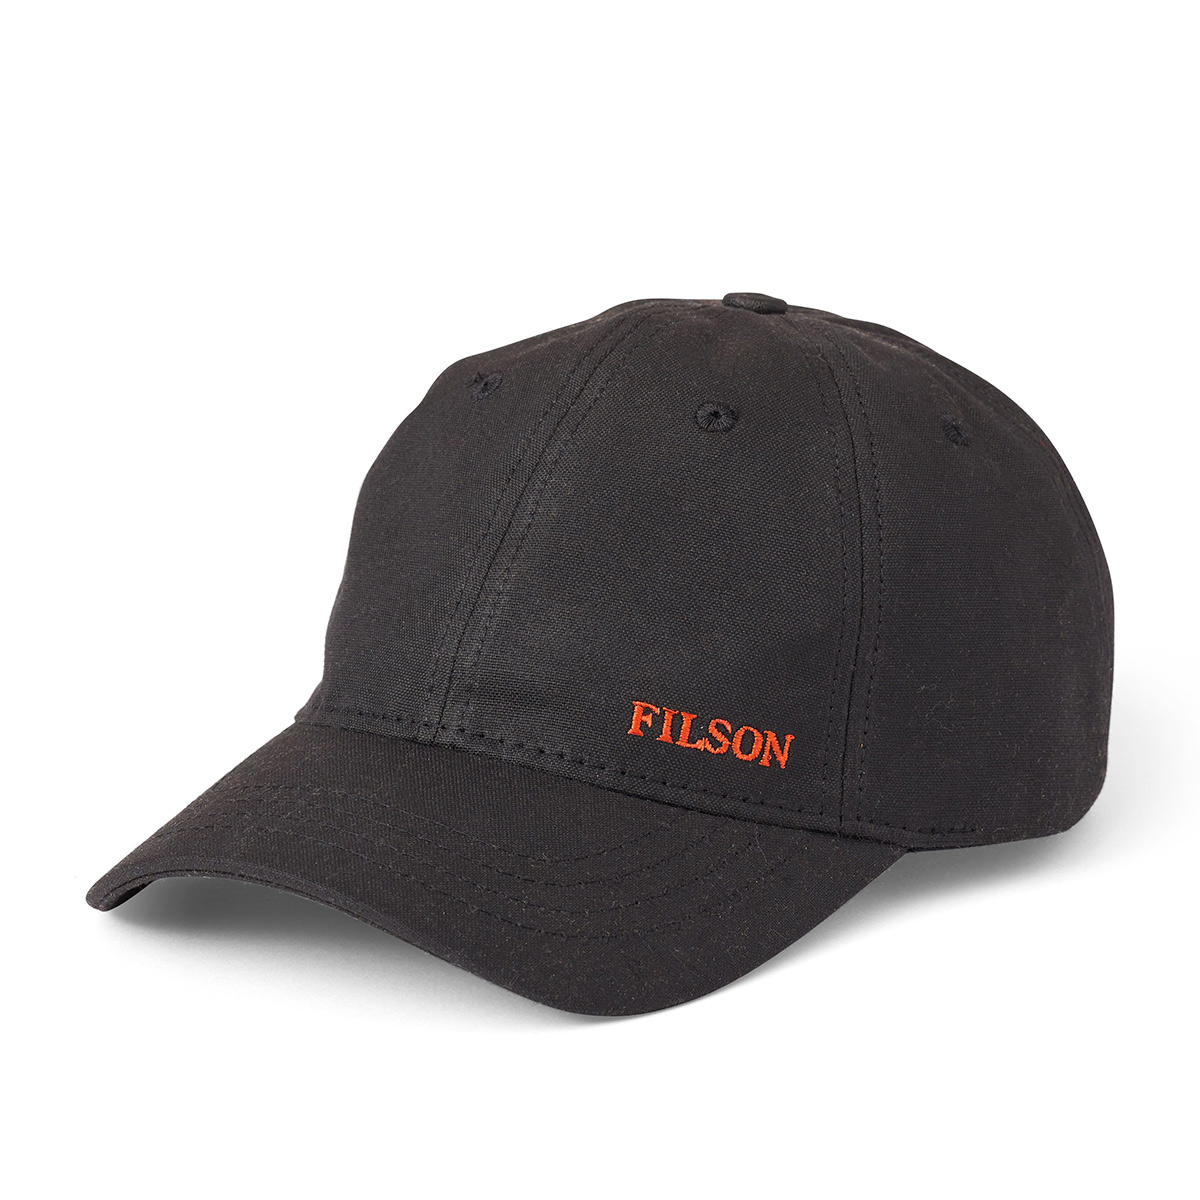 Filson Oil Tin Low-Profile Cap 20172158 Black, to provide years of service